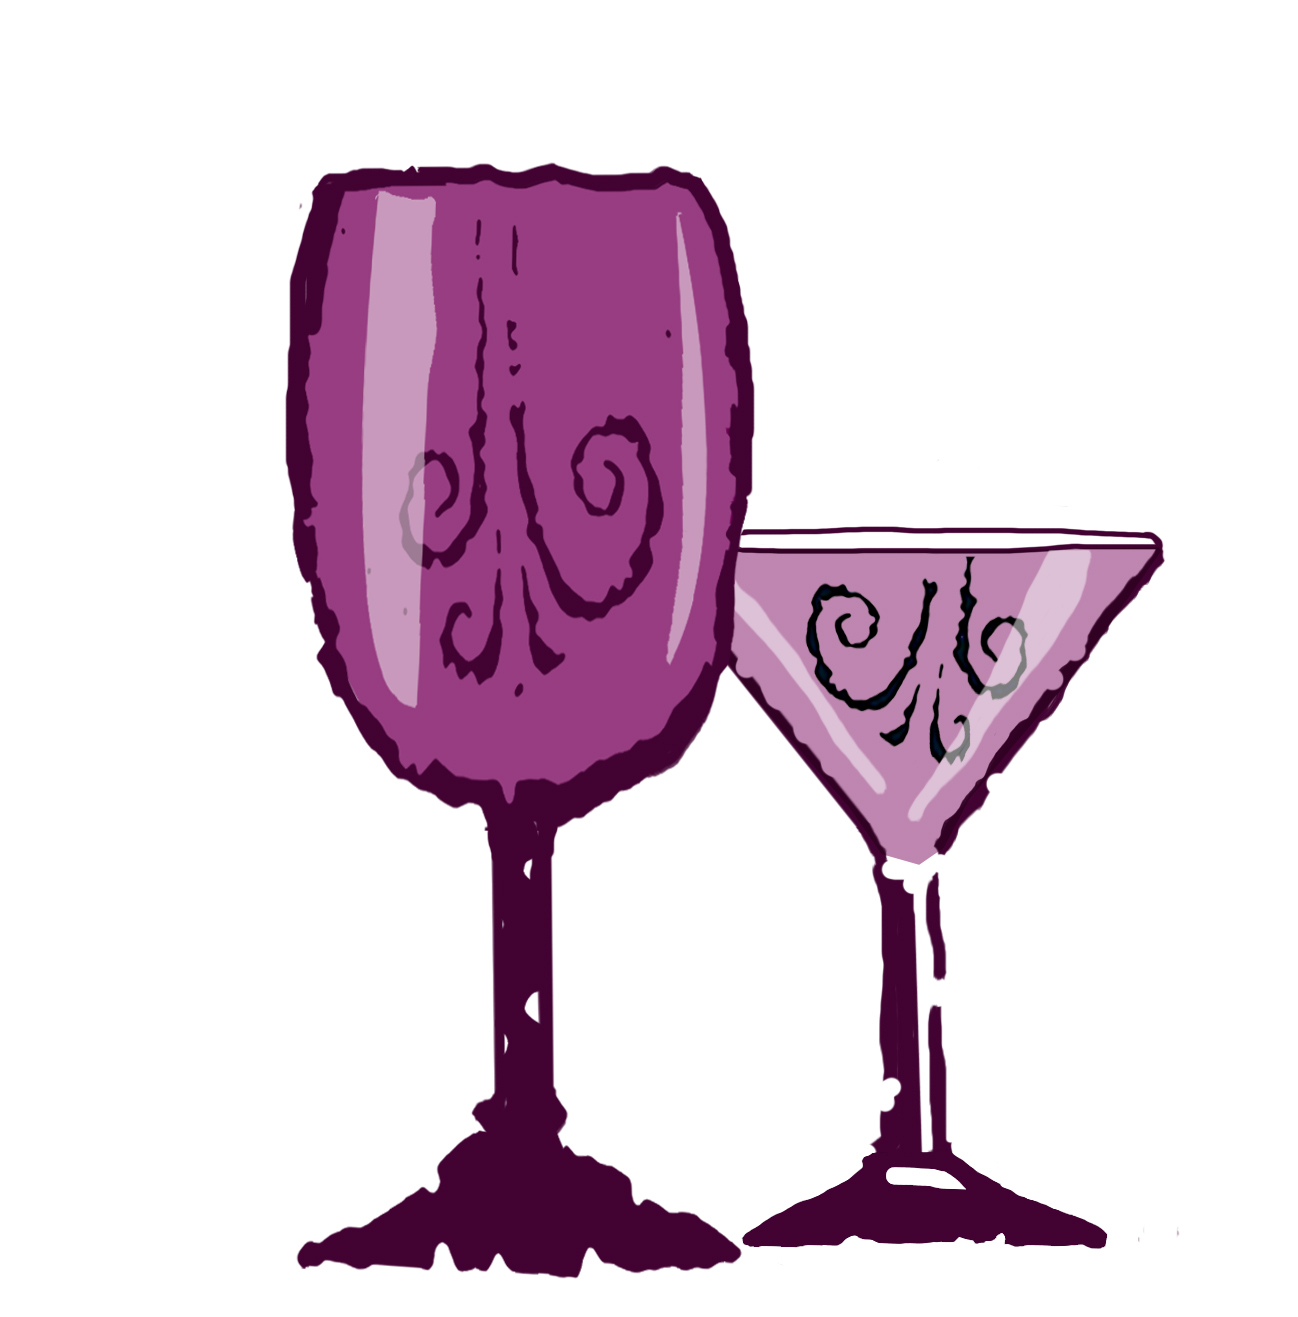 Champaign clipart wine spirit. Wset level award in